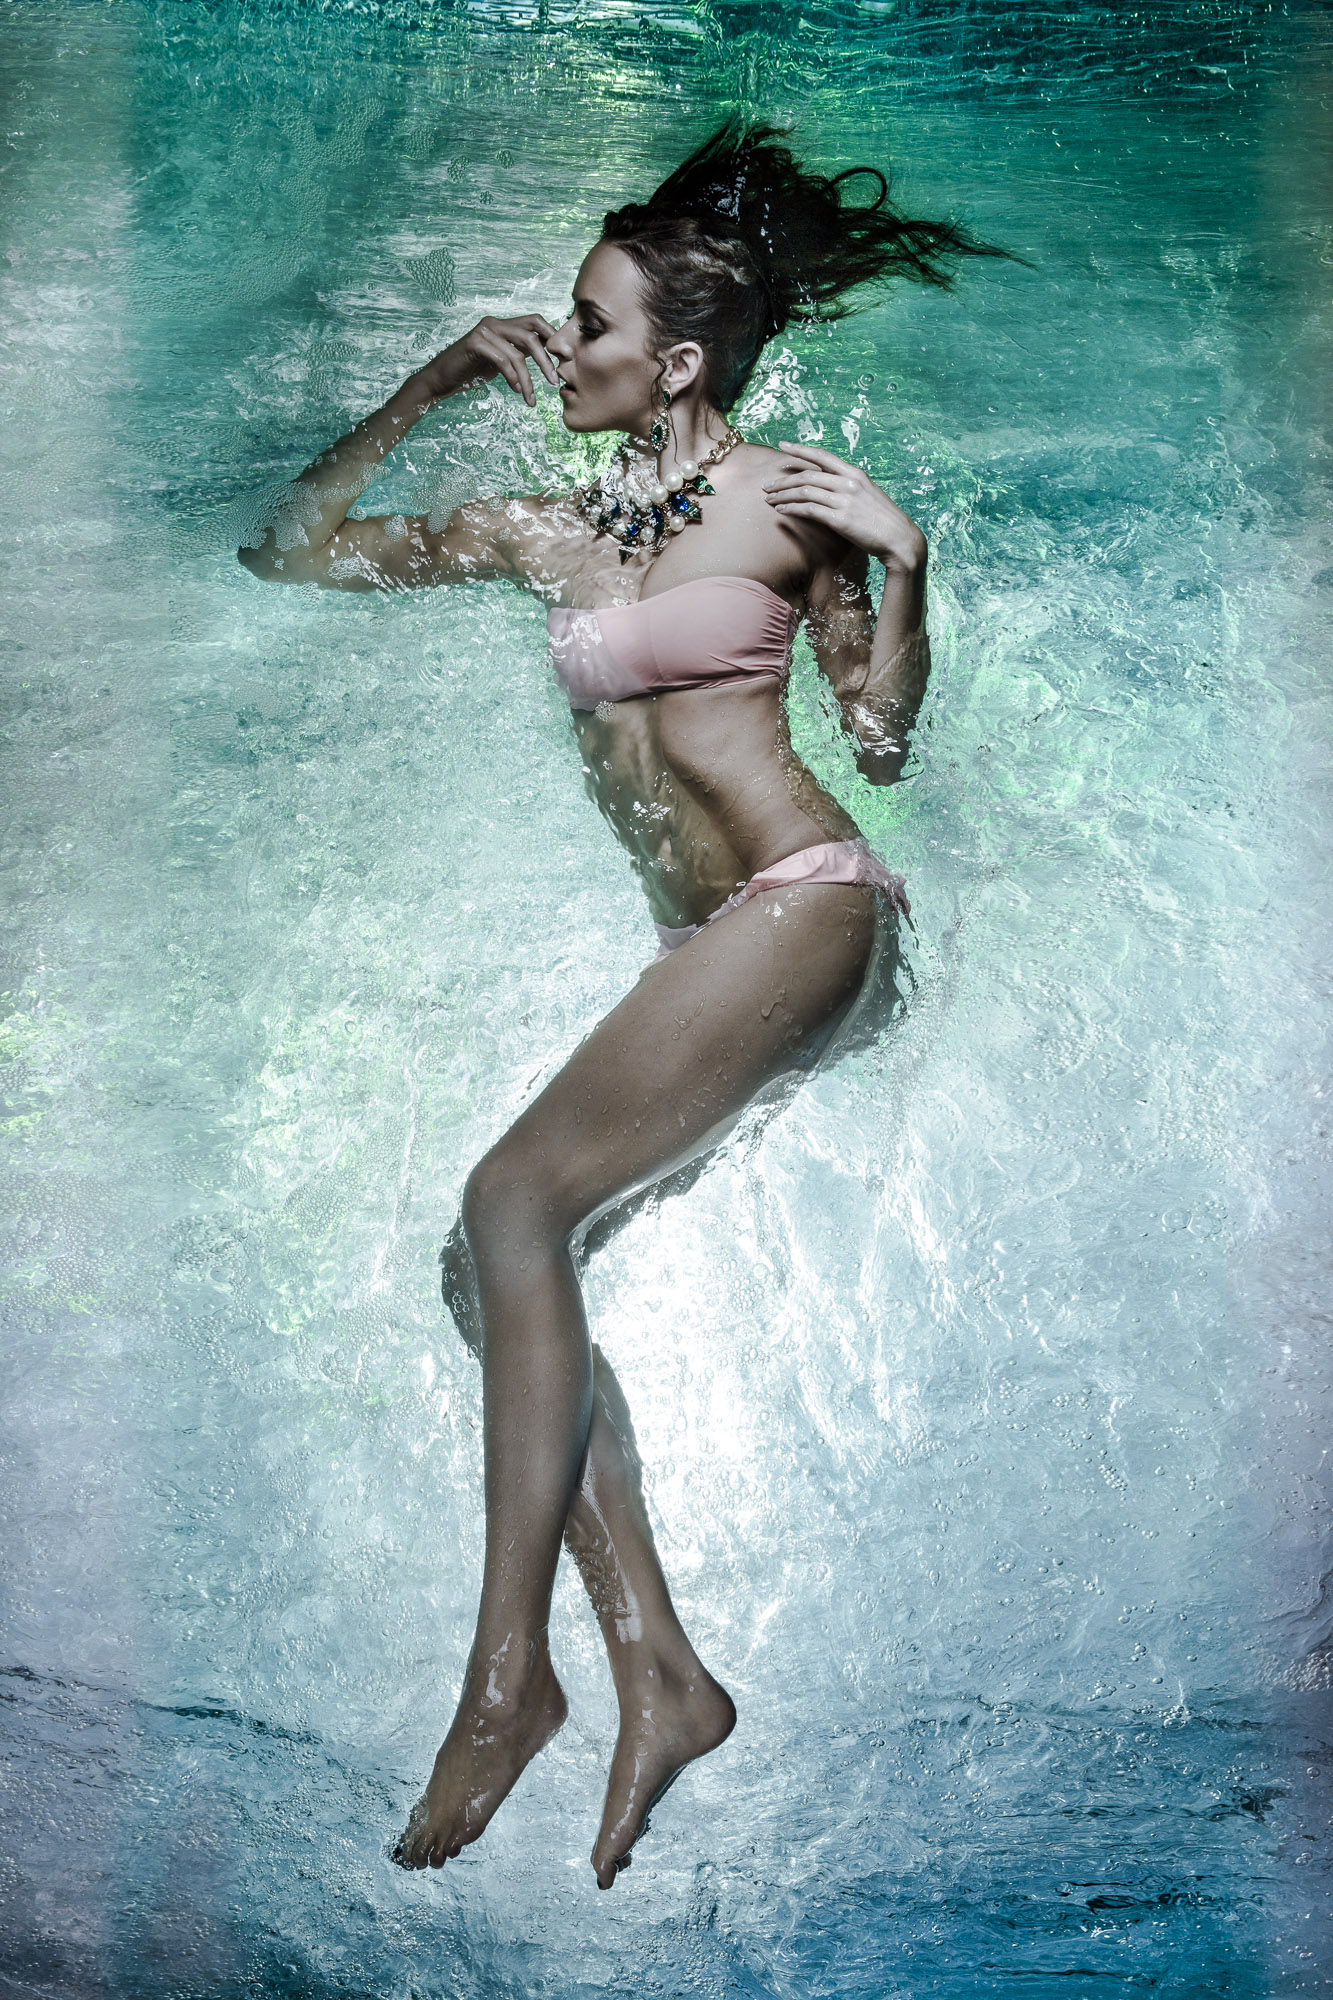 Underwater Fashion Photography by Cheng Han